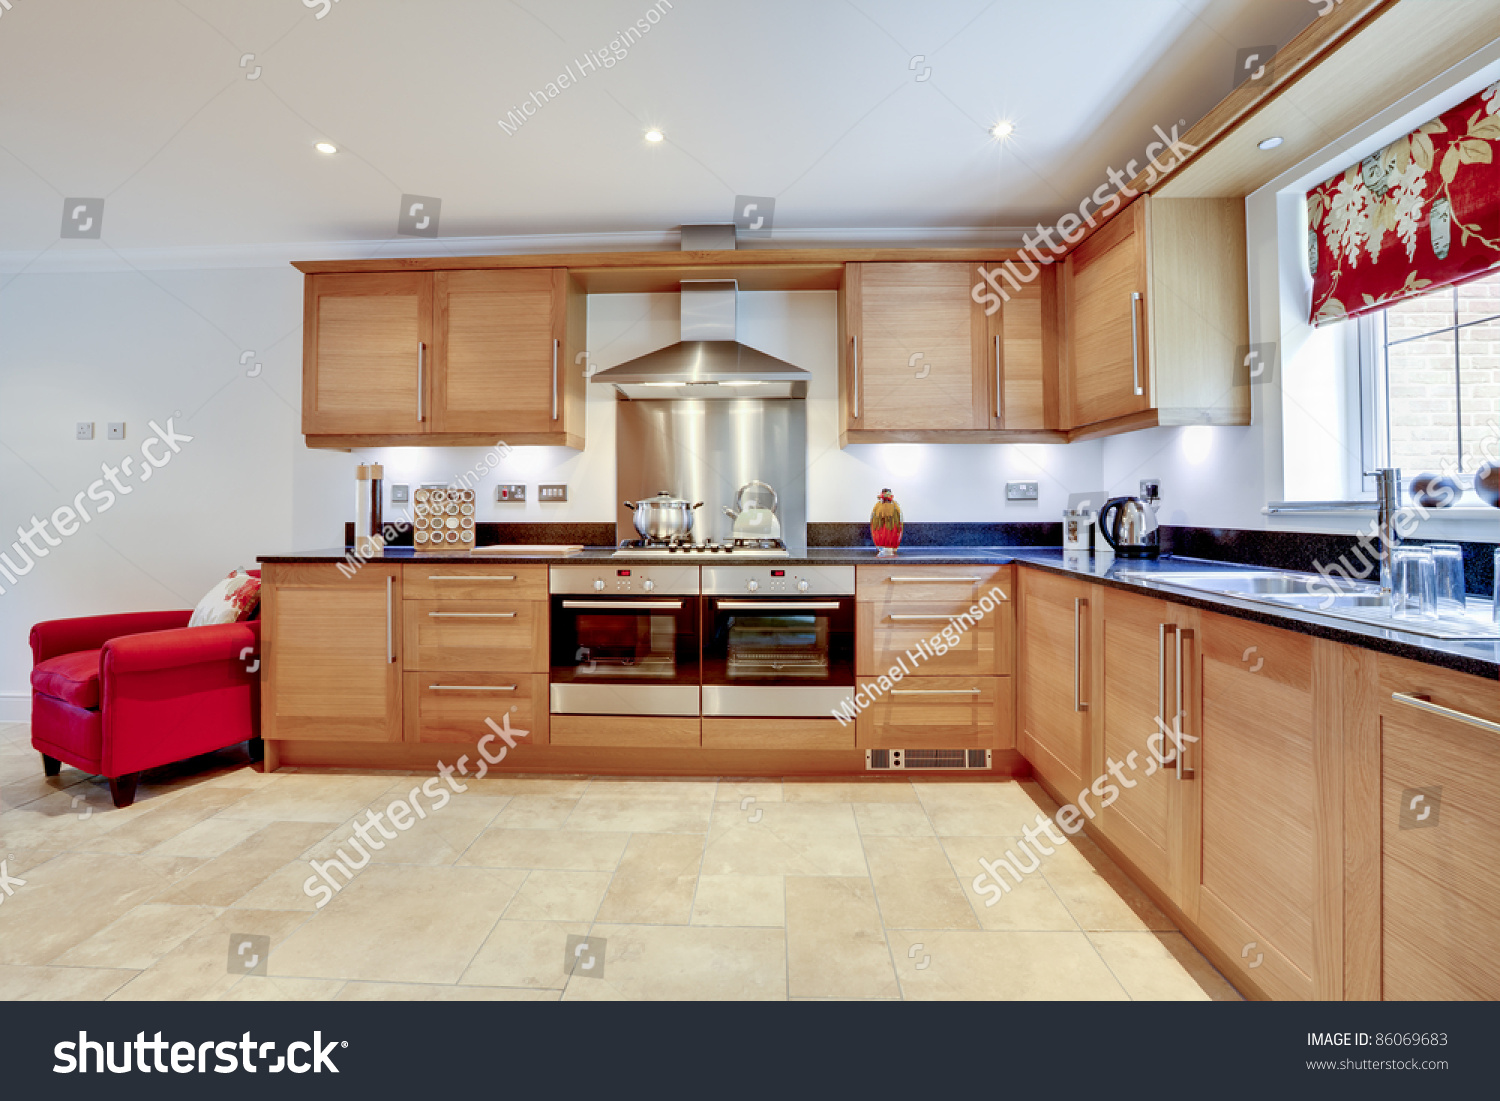 Luxury Modern Fitted Kitchen With Built In Appliances And